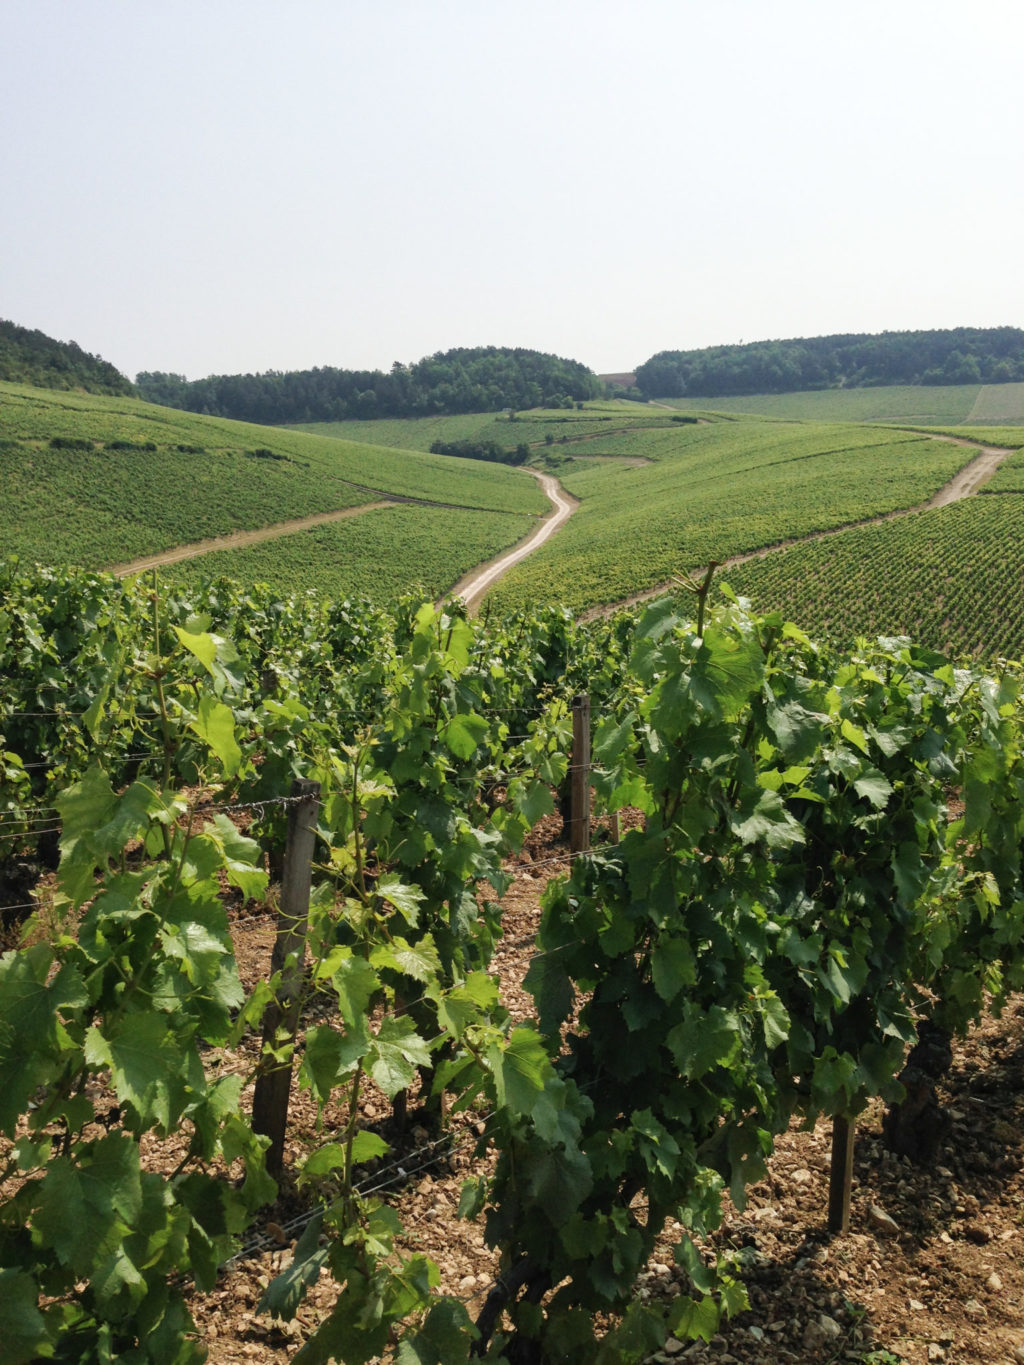 Chablis vineyards in July. Photo by Gloria J. Chang.